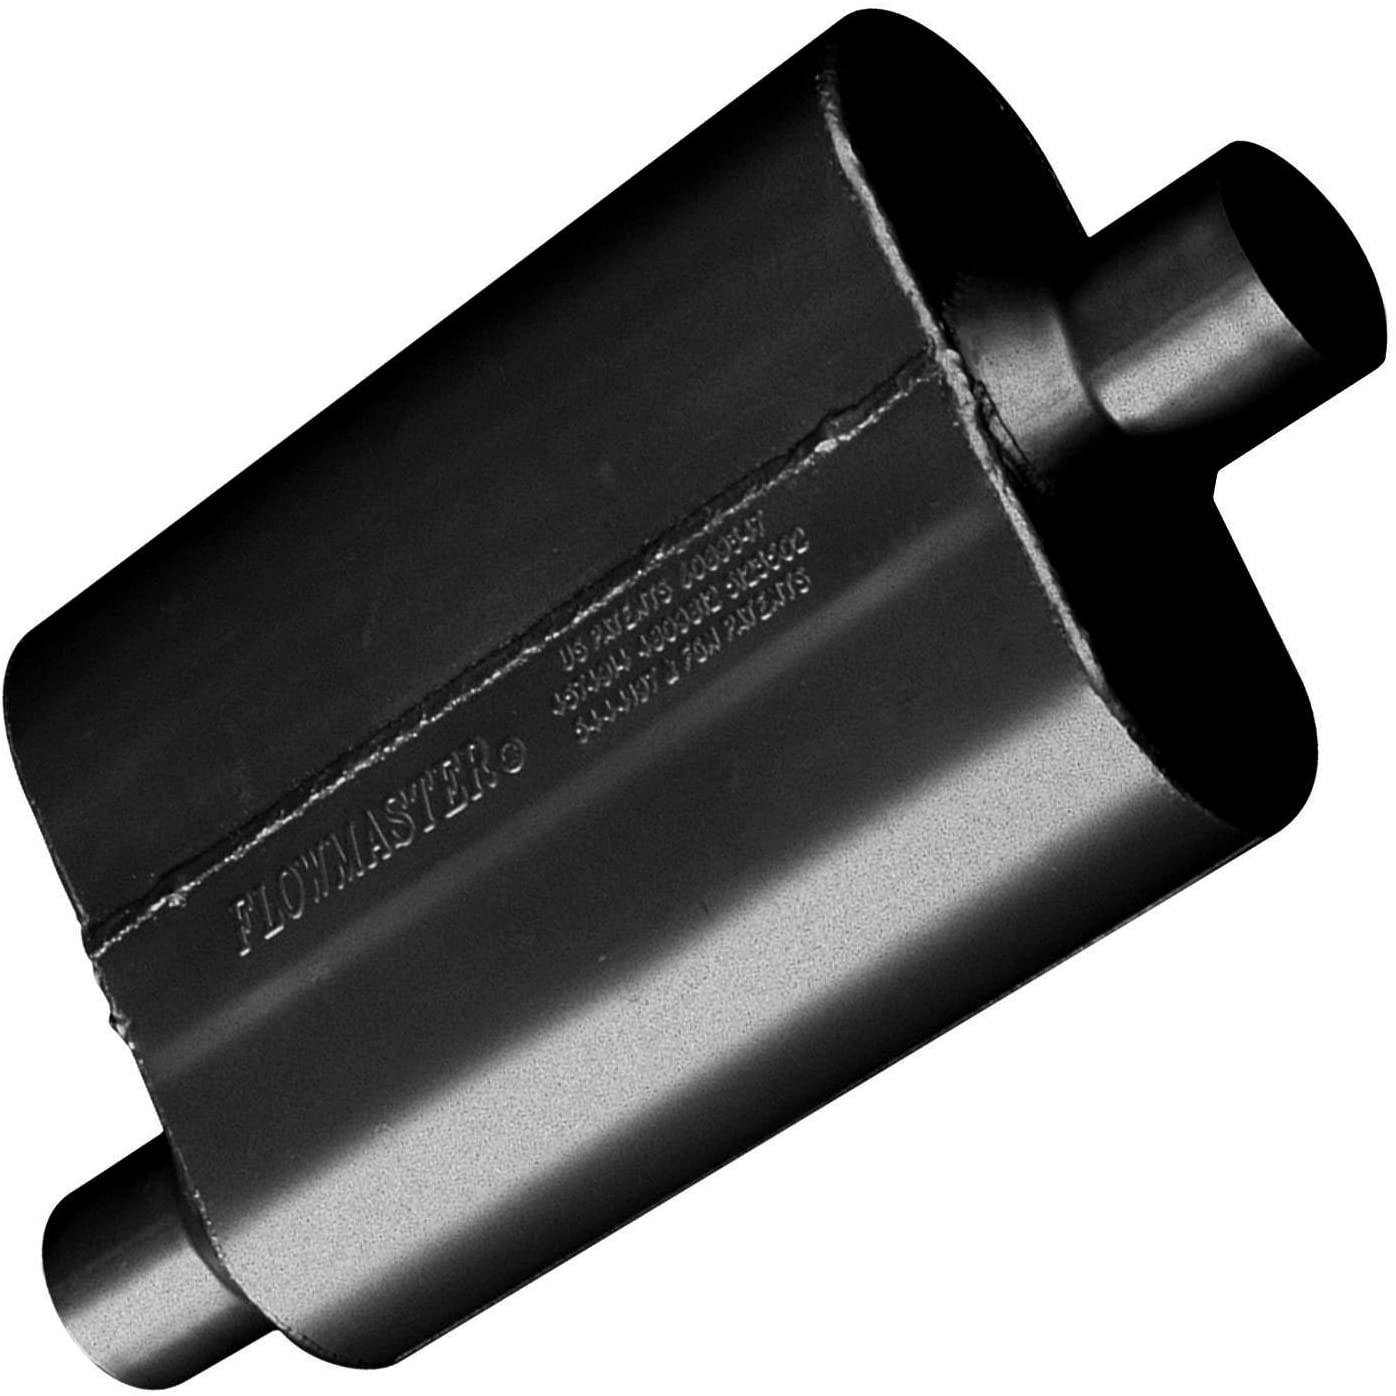 B000182BBC Flowmaster 42441 40 Series Muffler - 2.25 Offset IN / 2.25 Center OUT - Aggressive Sound 71sPP-rQYSL.SL1500_